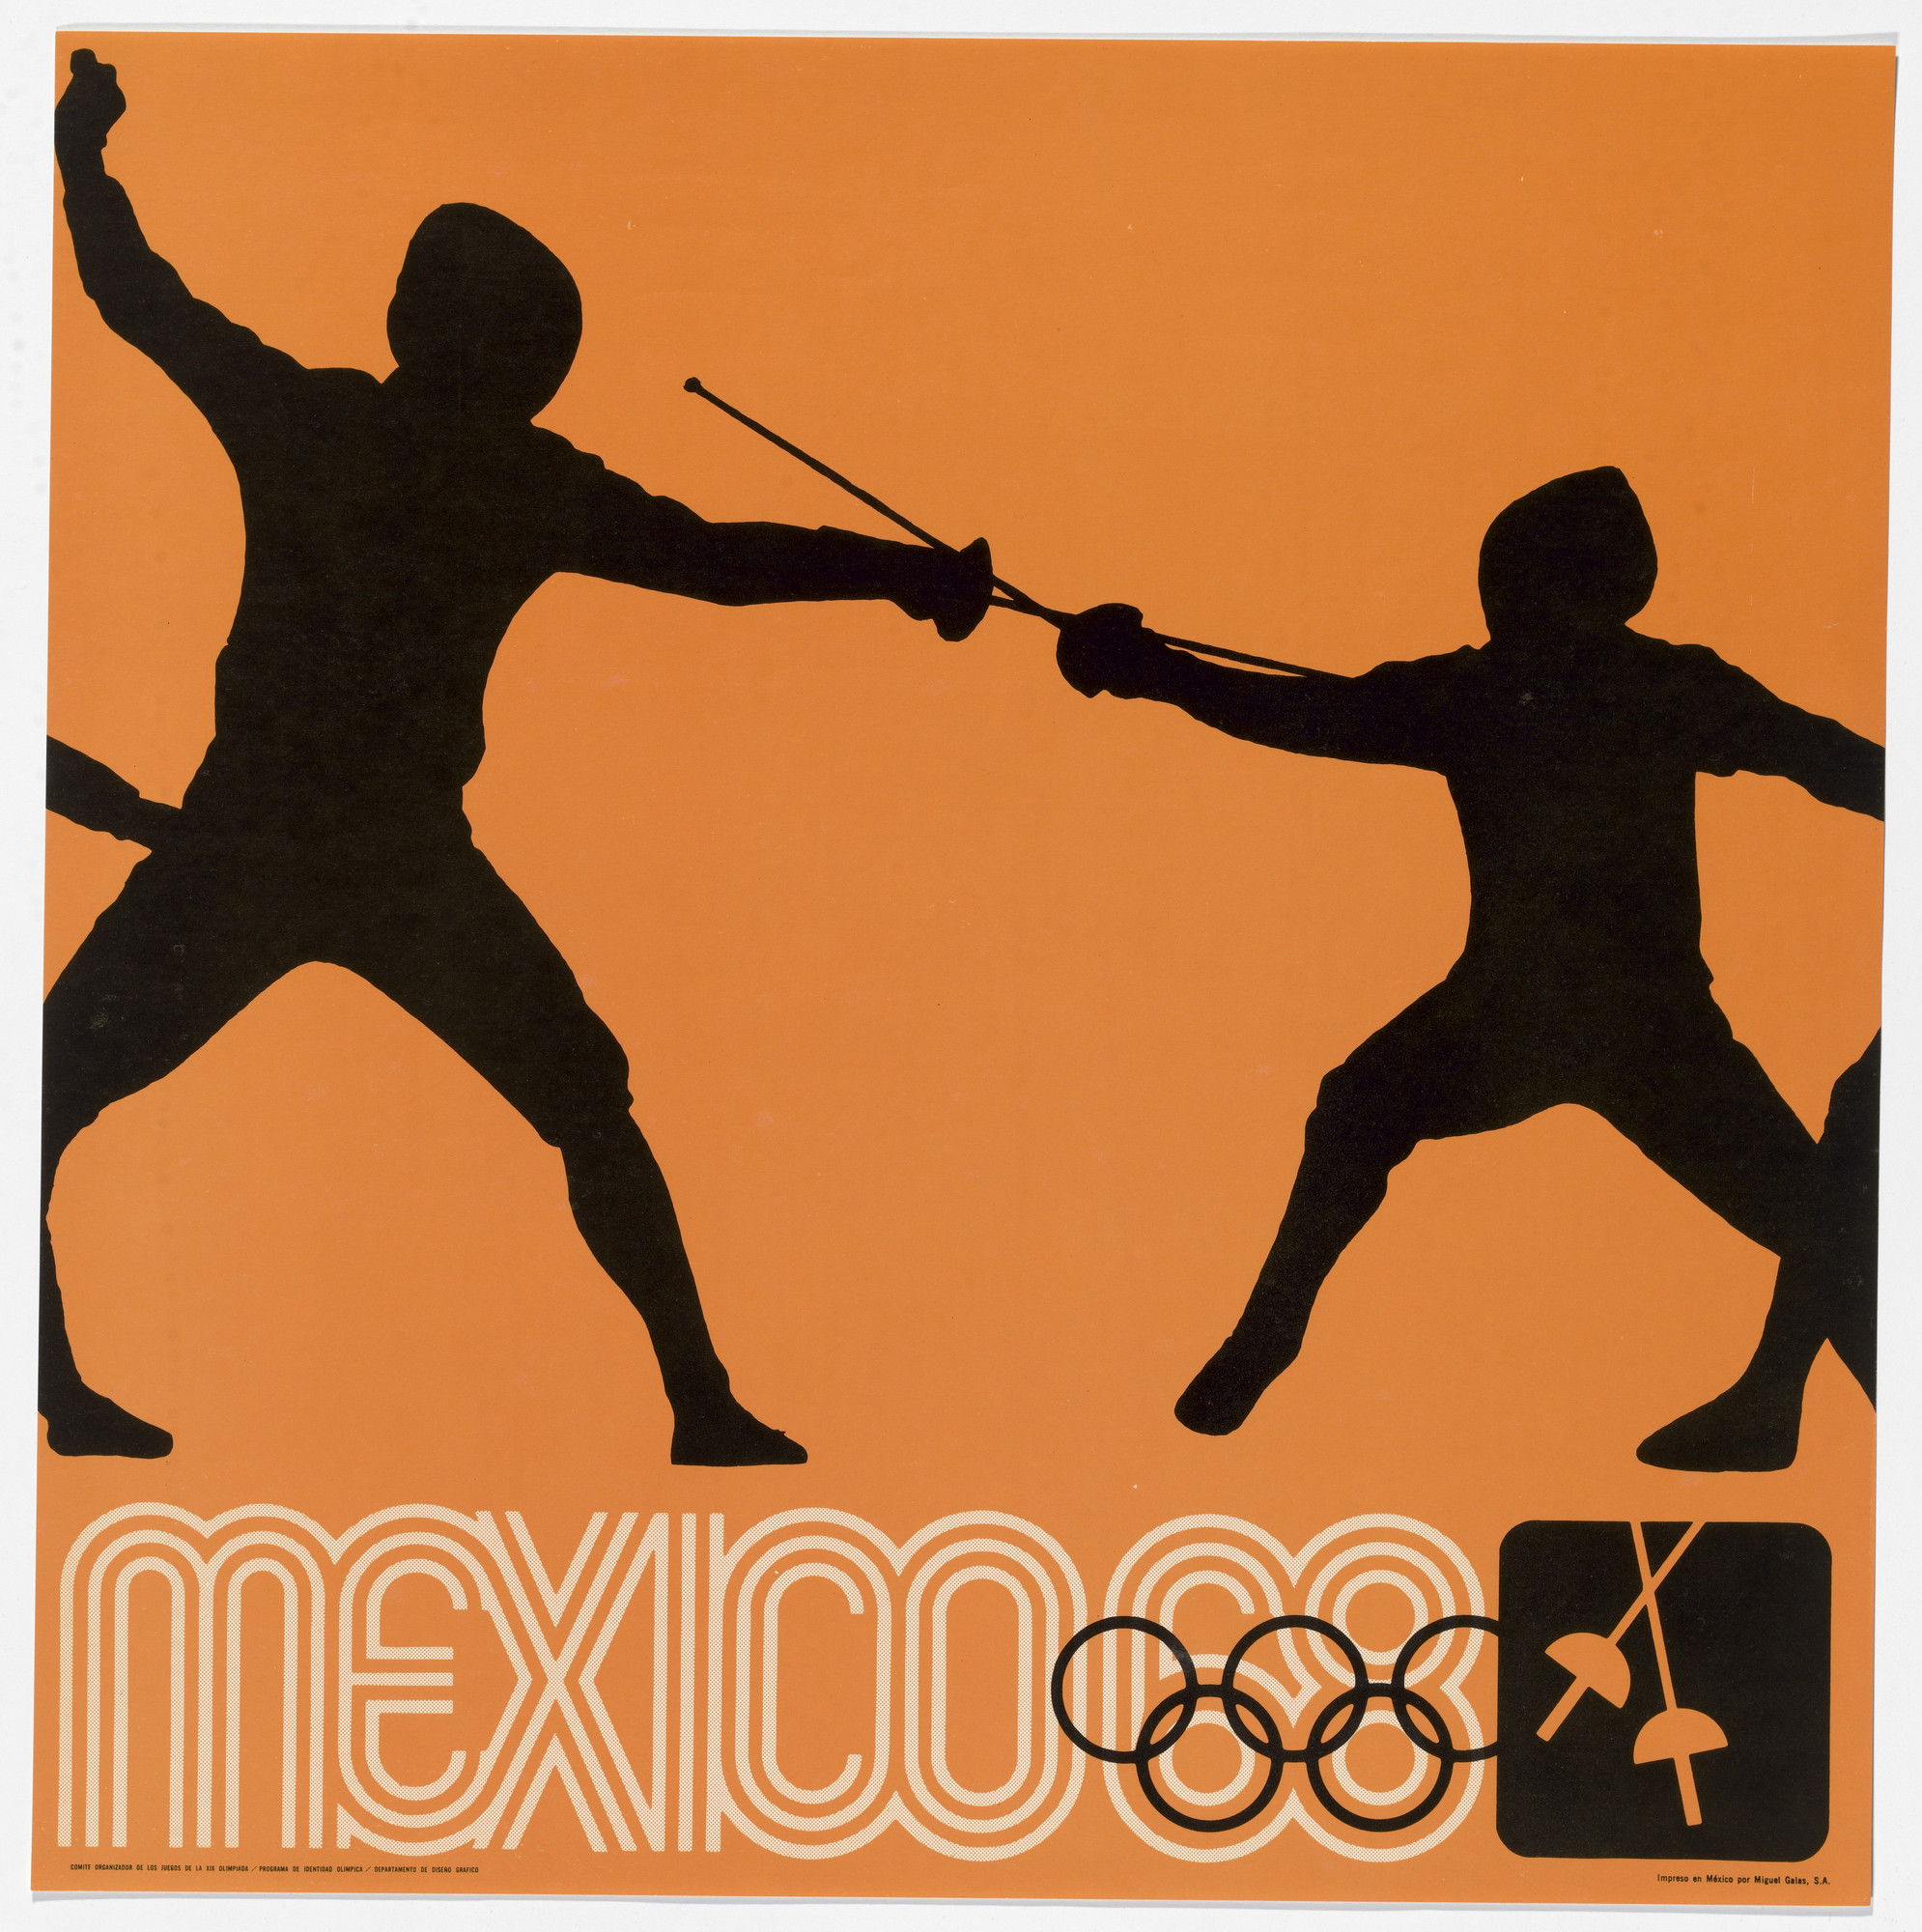 Lance Wyman, Department of Publications and Urban Design, Organizing Committee of the XIX Olympiad. Mexico City 1968 Olympics: Fencing. c. 1968